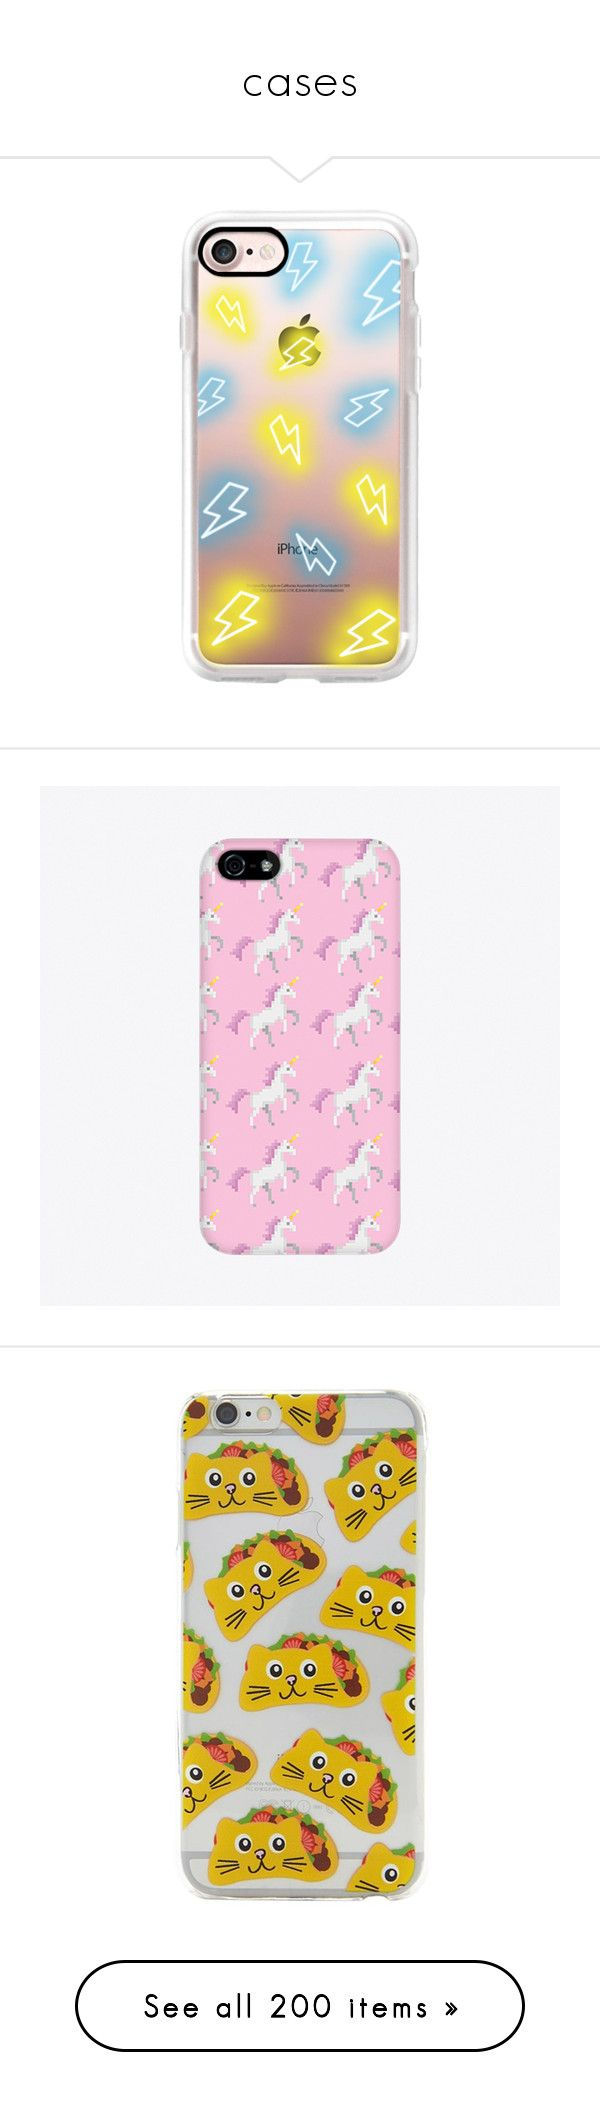 """cases"" by zachtoby ❤ liked on Polyvore featuring accessories, tech accessories, iphone case, iphone cases, iphone cover case, apple iphone case, phone cases, phone, case and unicorn iphone case"